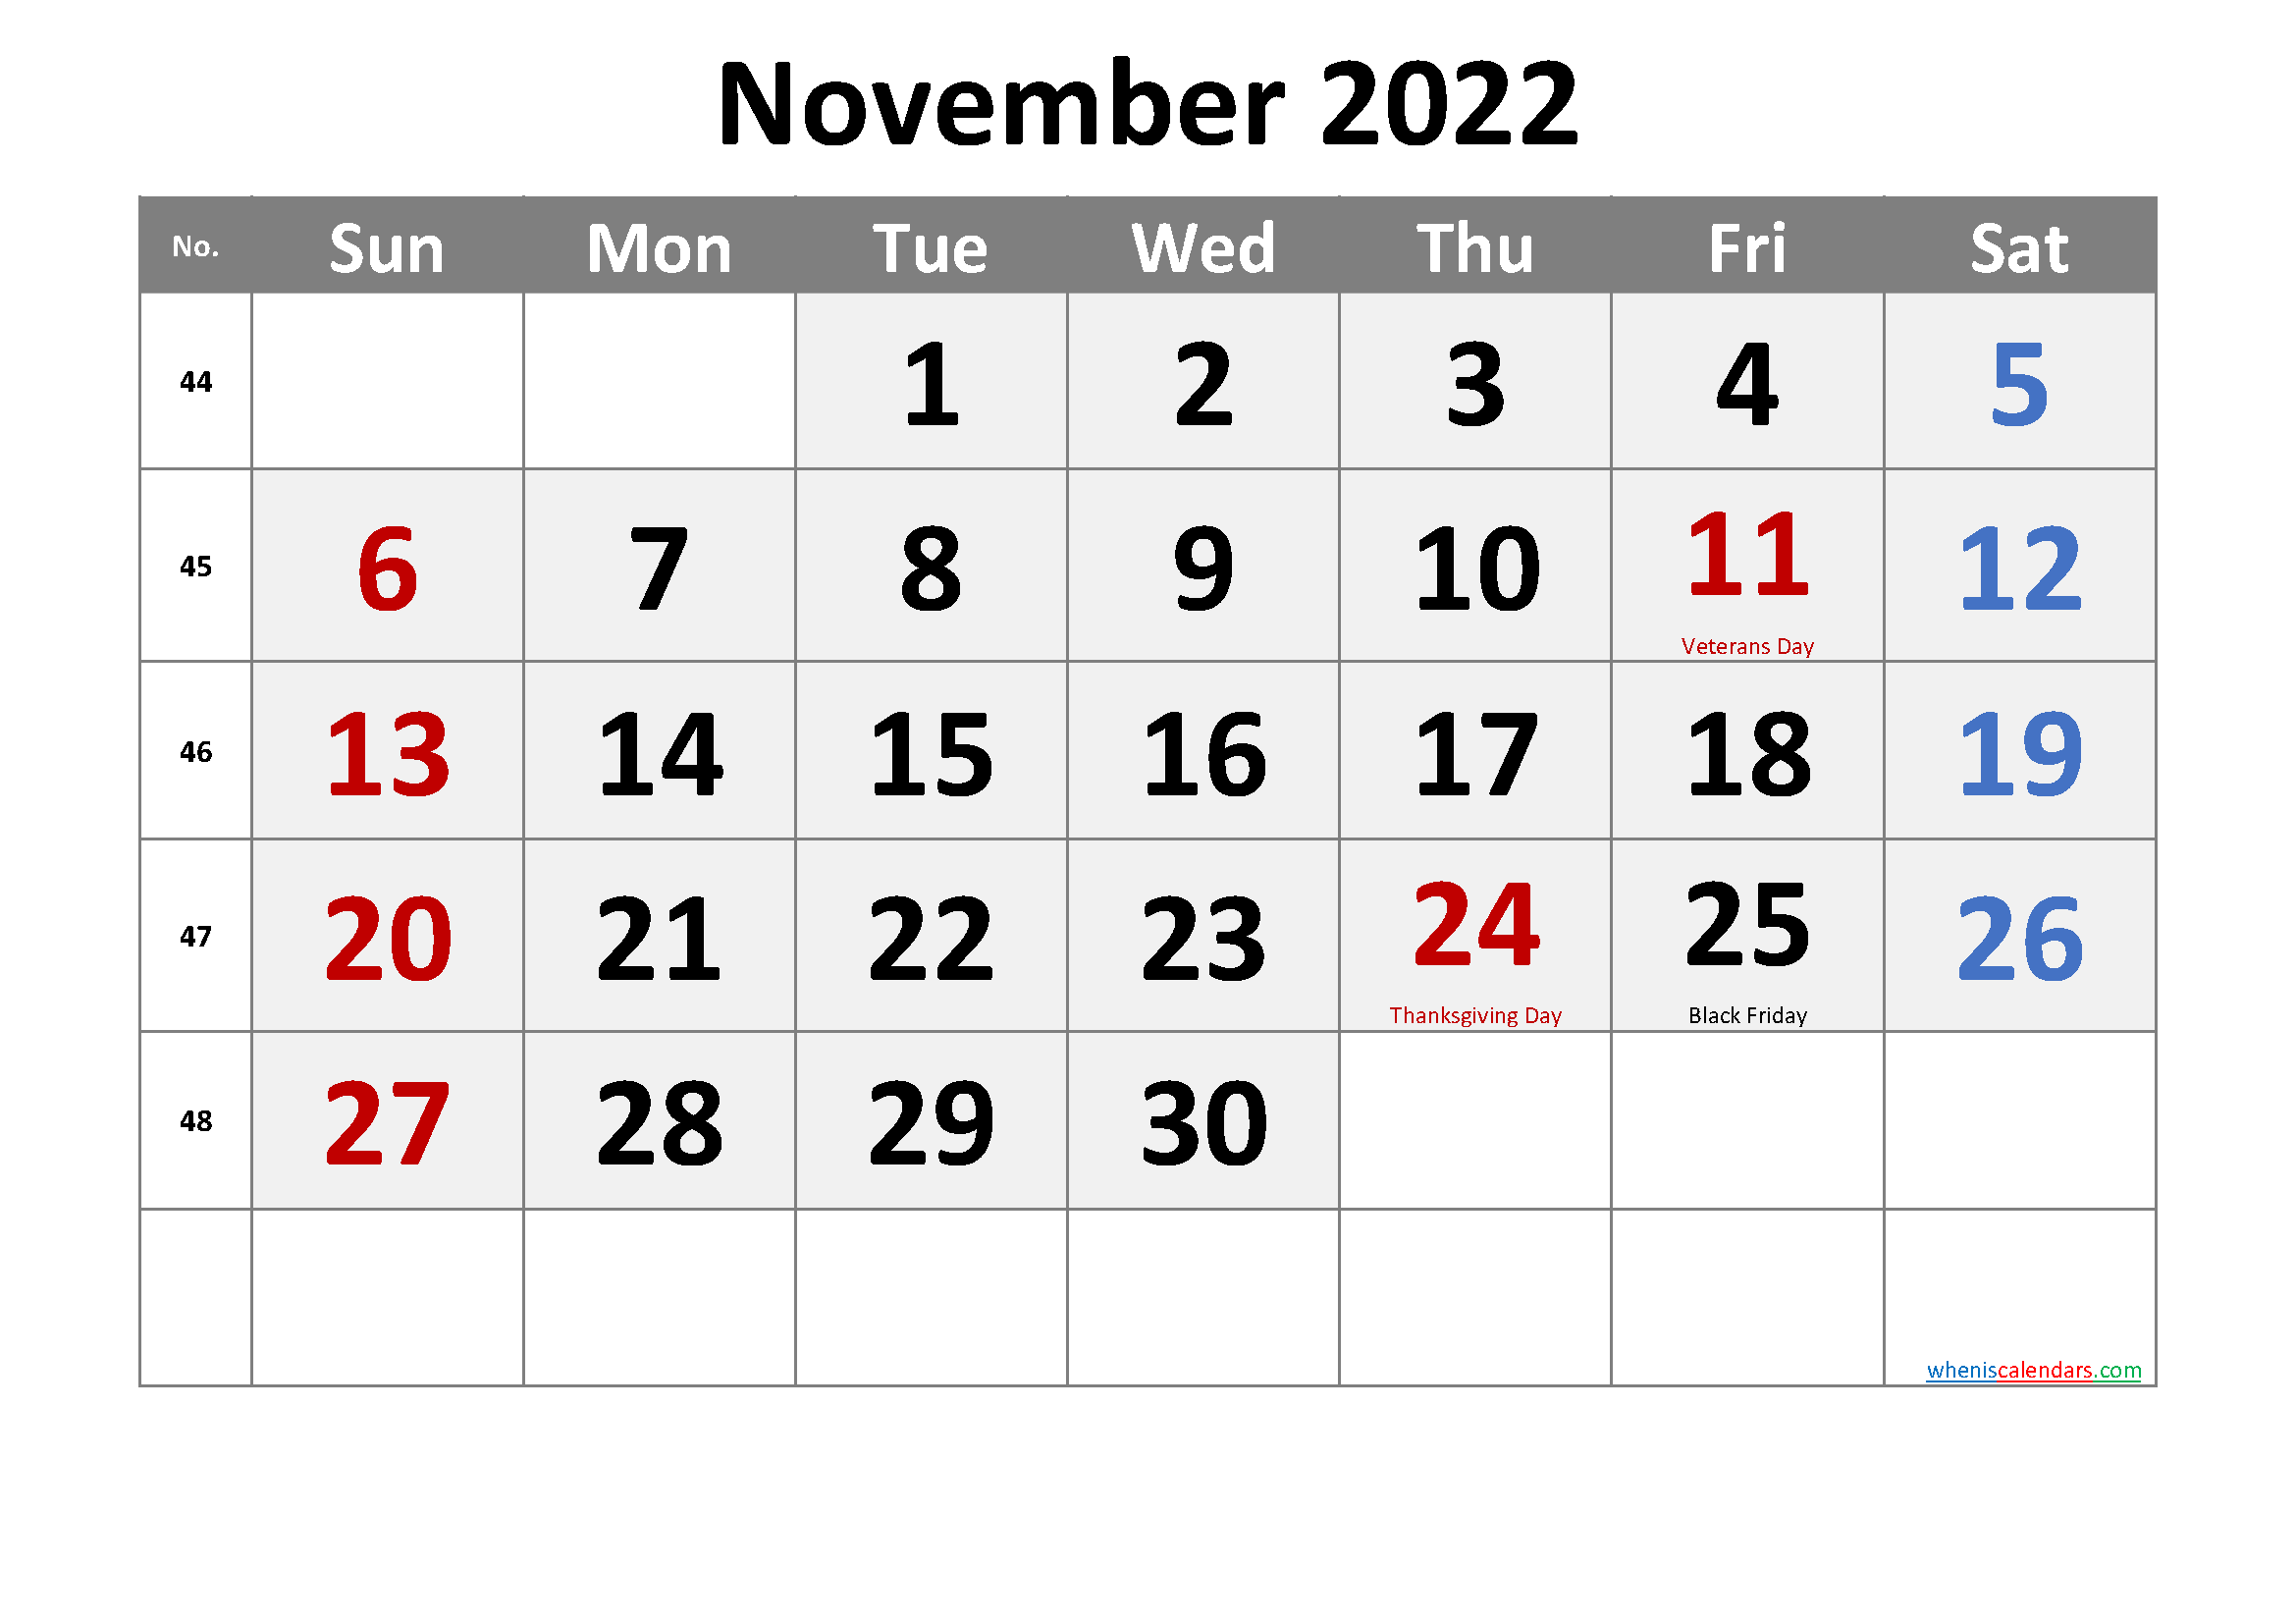 NOVEMBER 2022 Printable Calendar with Holidays